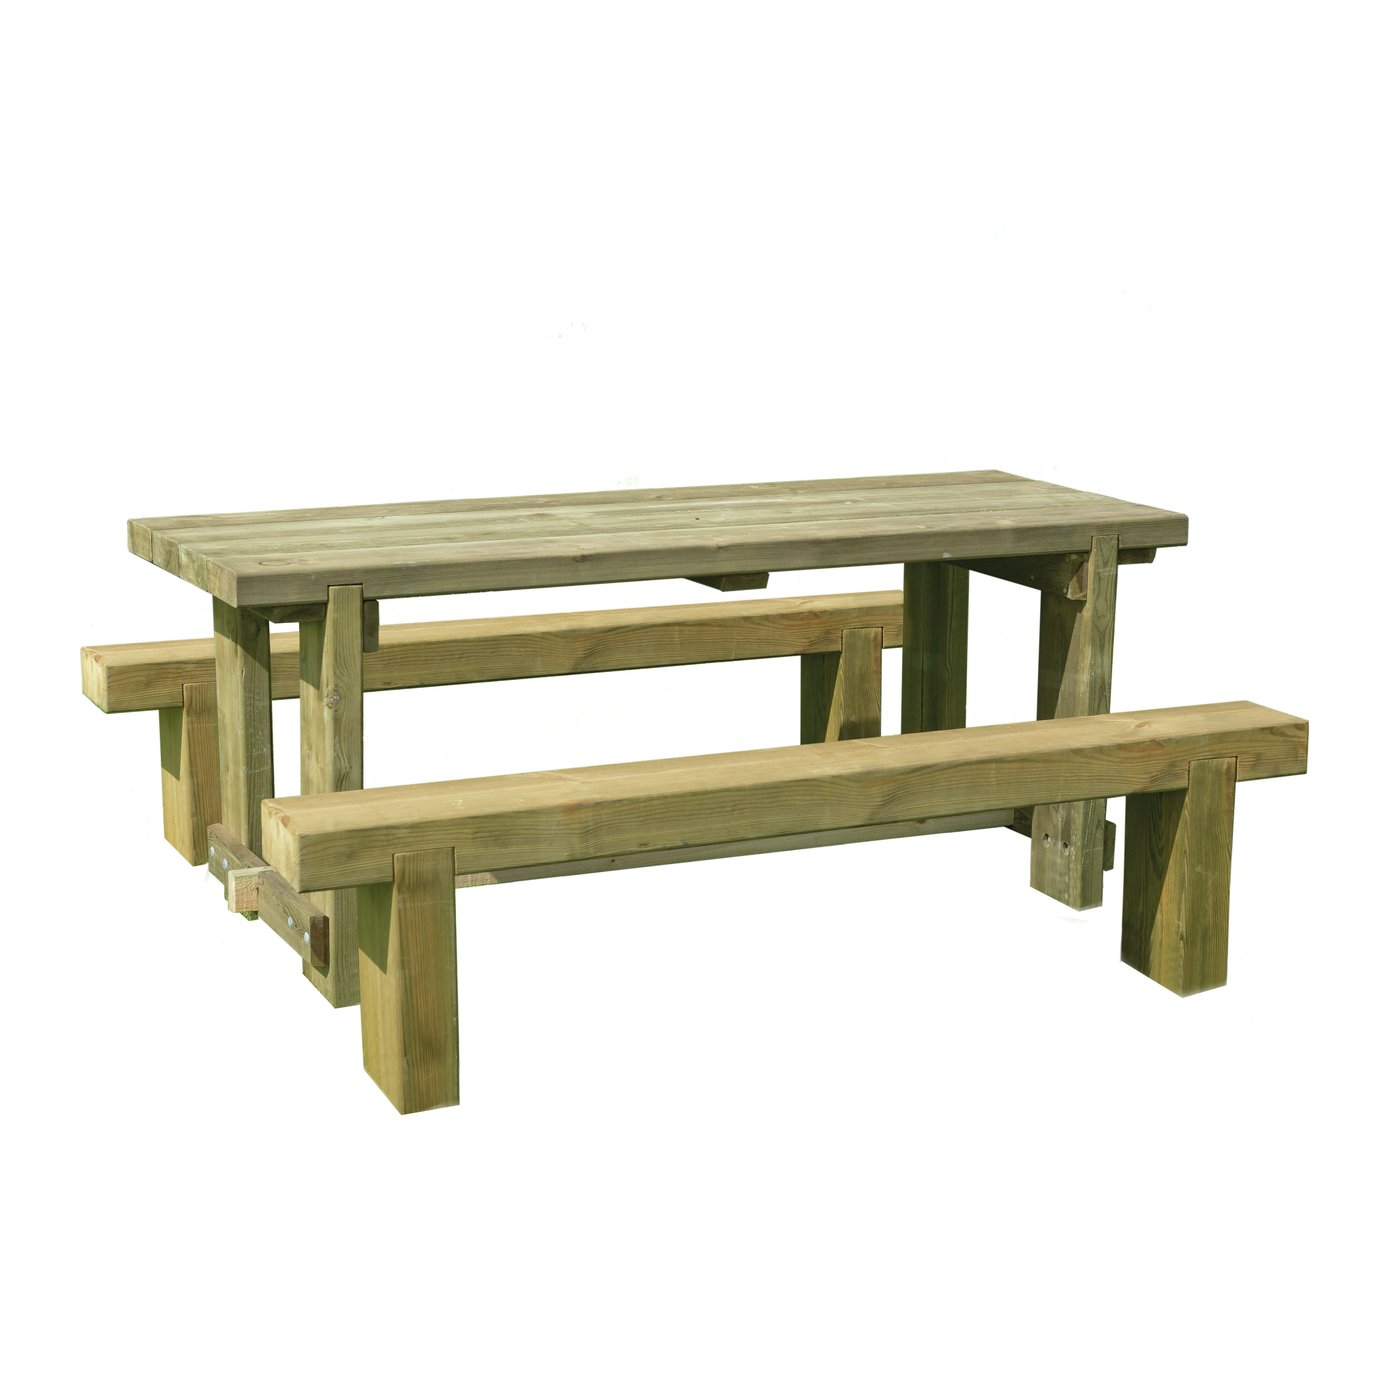 Forest Garden Sleeper Benches and Table Set 1.8m